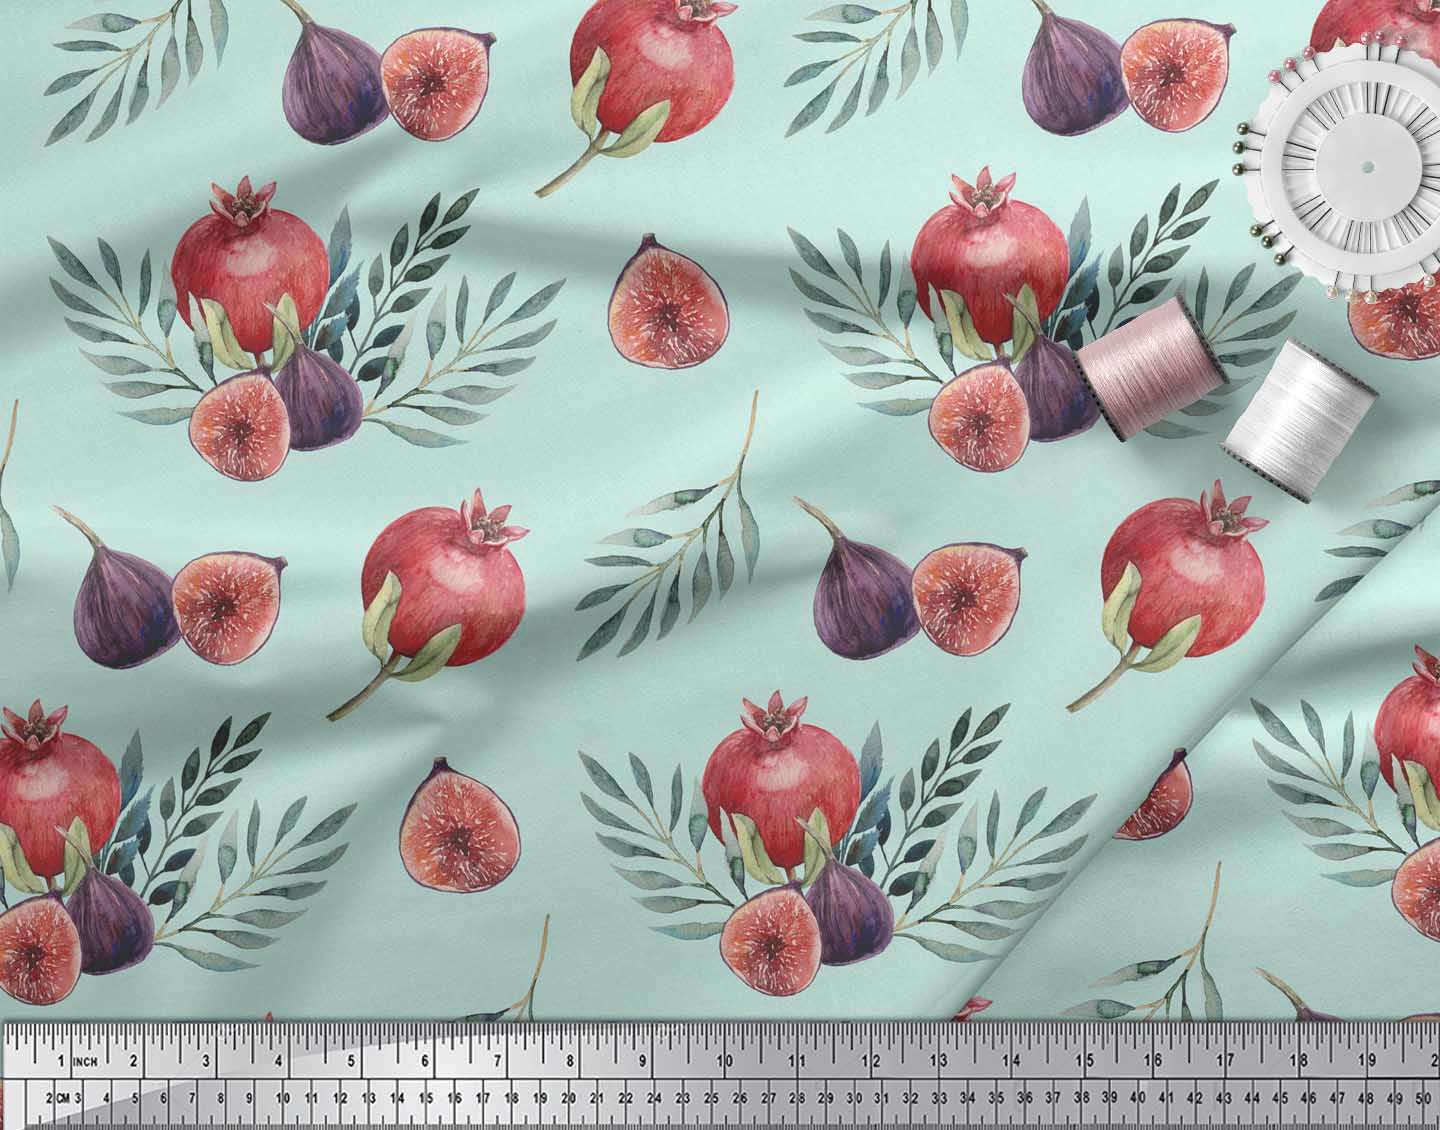 Soimoi-Green-Cotton-Poplin-Fabric-Pomegranate-amp-Fig-Fruits-Print-IR5 thumbnail 4